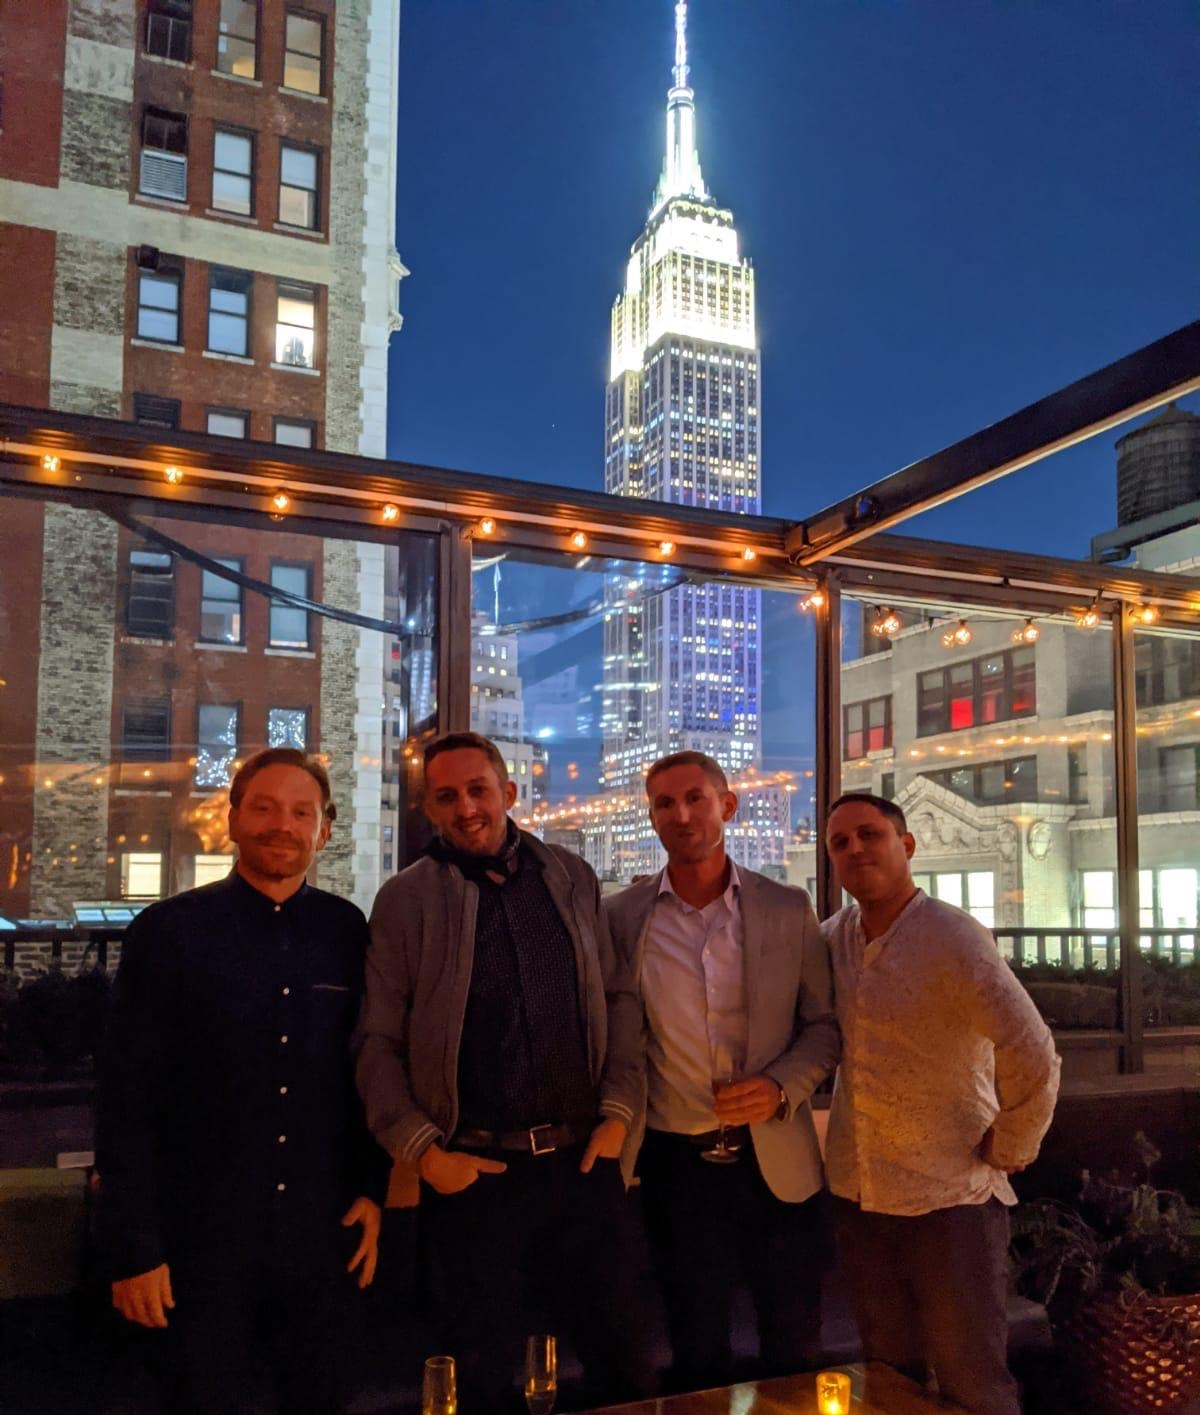 Josh Melick and friends standing in front of Empire State building